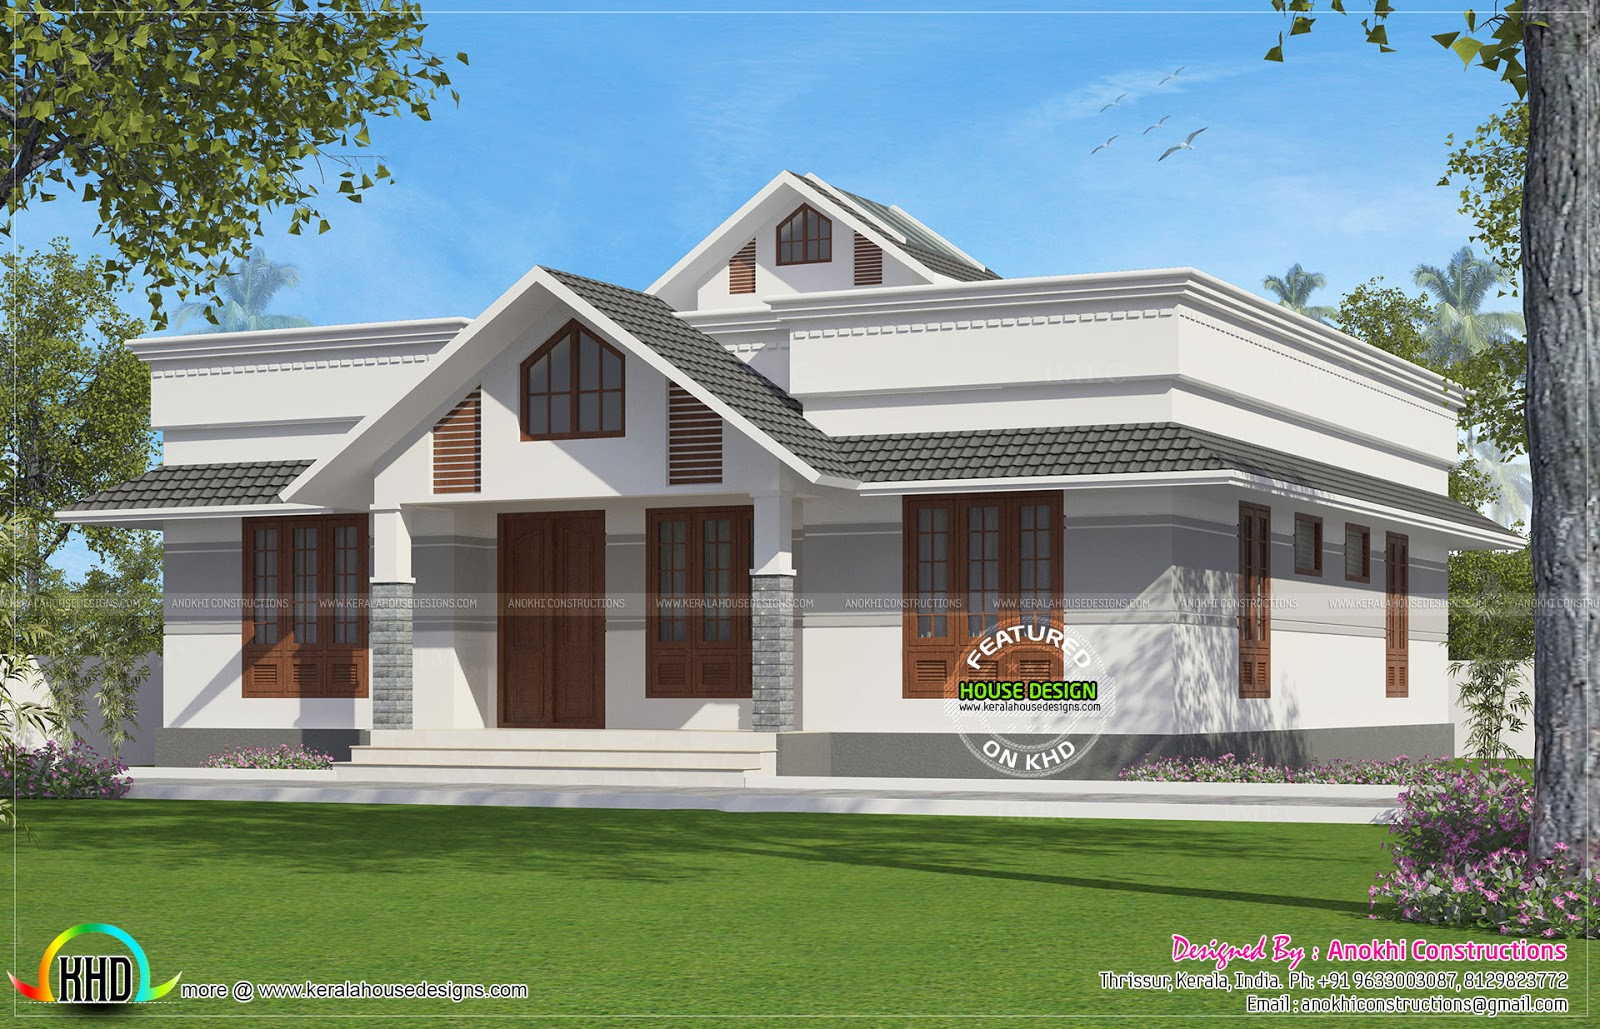 1330 square feet small house plan kerala home design and for Low cost house plans with estimate